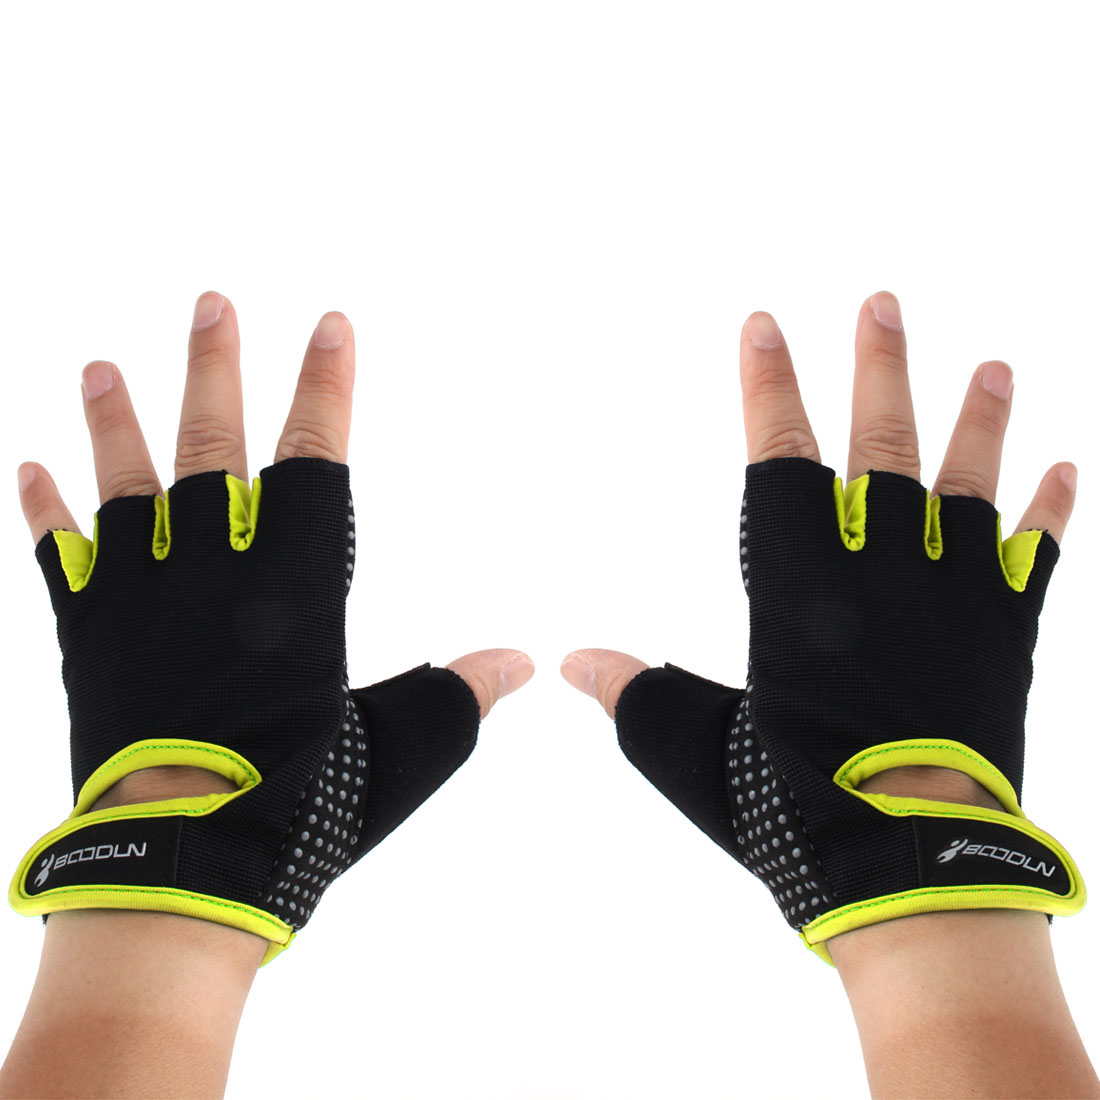 BOODUN Authorized Gym Workout Weight Lifting Training Adjustable Anti Slip Breathable Fitness Half Finger Gloves Yellow L Size Pair